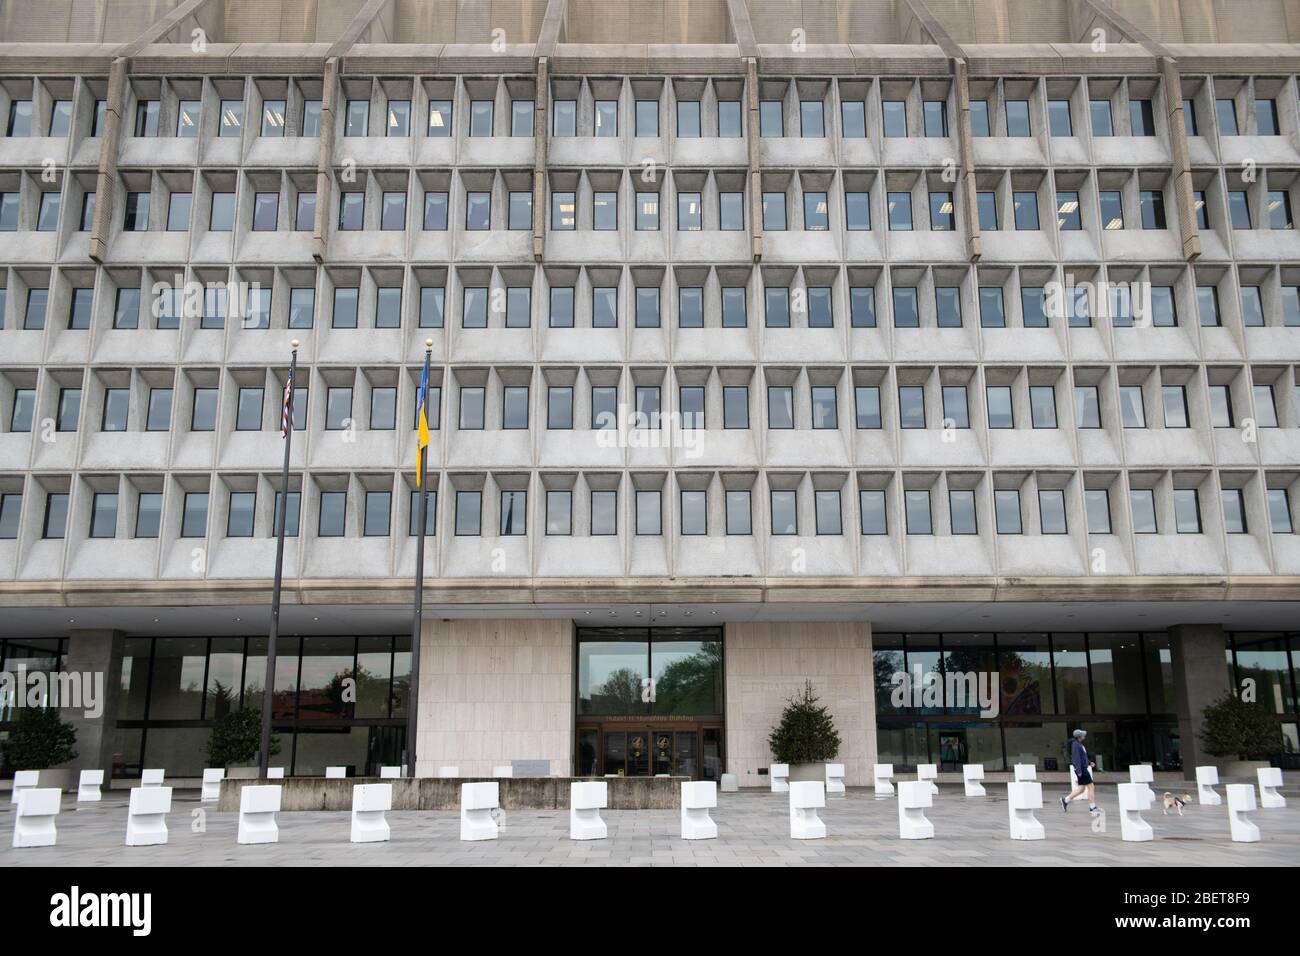 Washington, USA. 15th Apr, 2020. A general view of the Department of Health and Human Services (HHS) in Washington, DC on Wednesday, April 15, 2020 amid the Coronavirus pandemic. Today, confirmed COVID-19 cases surpassed 2 million globally, while on Tuesday President Trump ordered his administration to halt funding to the World Health Organization (WHO), which he blames for mismanaging and covering up the outbreak in its early months. (Graeme Sloan/Sipa USA) Credit: Sipa USA/Alamy Live News Stock Photo